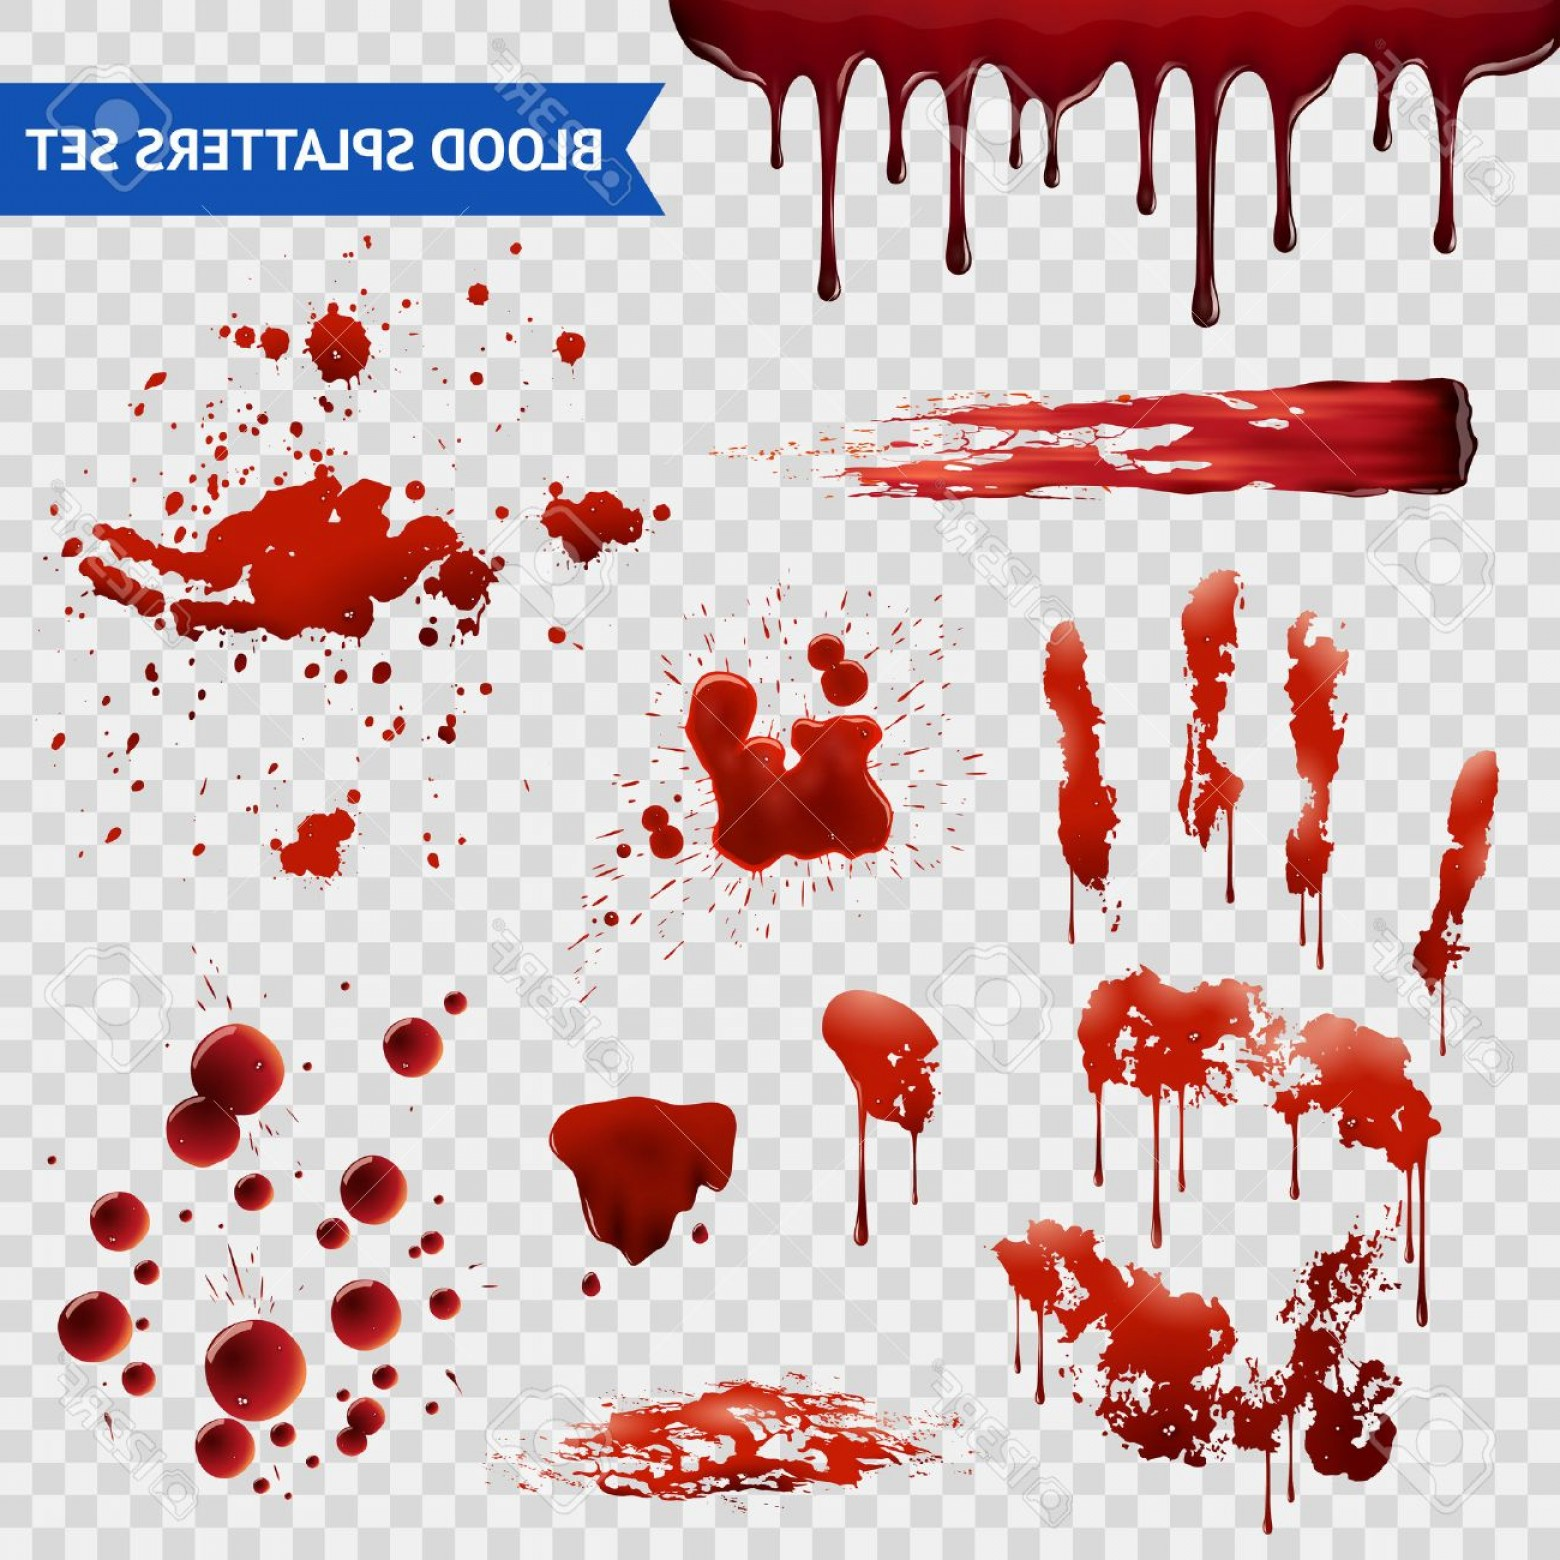 Hand Prints Vector Transparent Background: Photostock Vector Blood Spatters Realistic Bloodstains Patterns Set Of Smears Splashes Drippings Drops And Handprint W